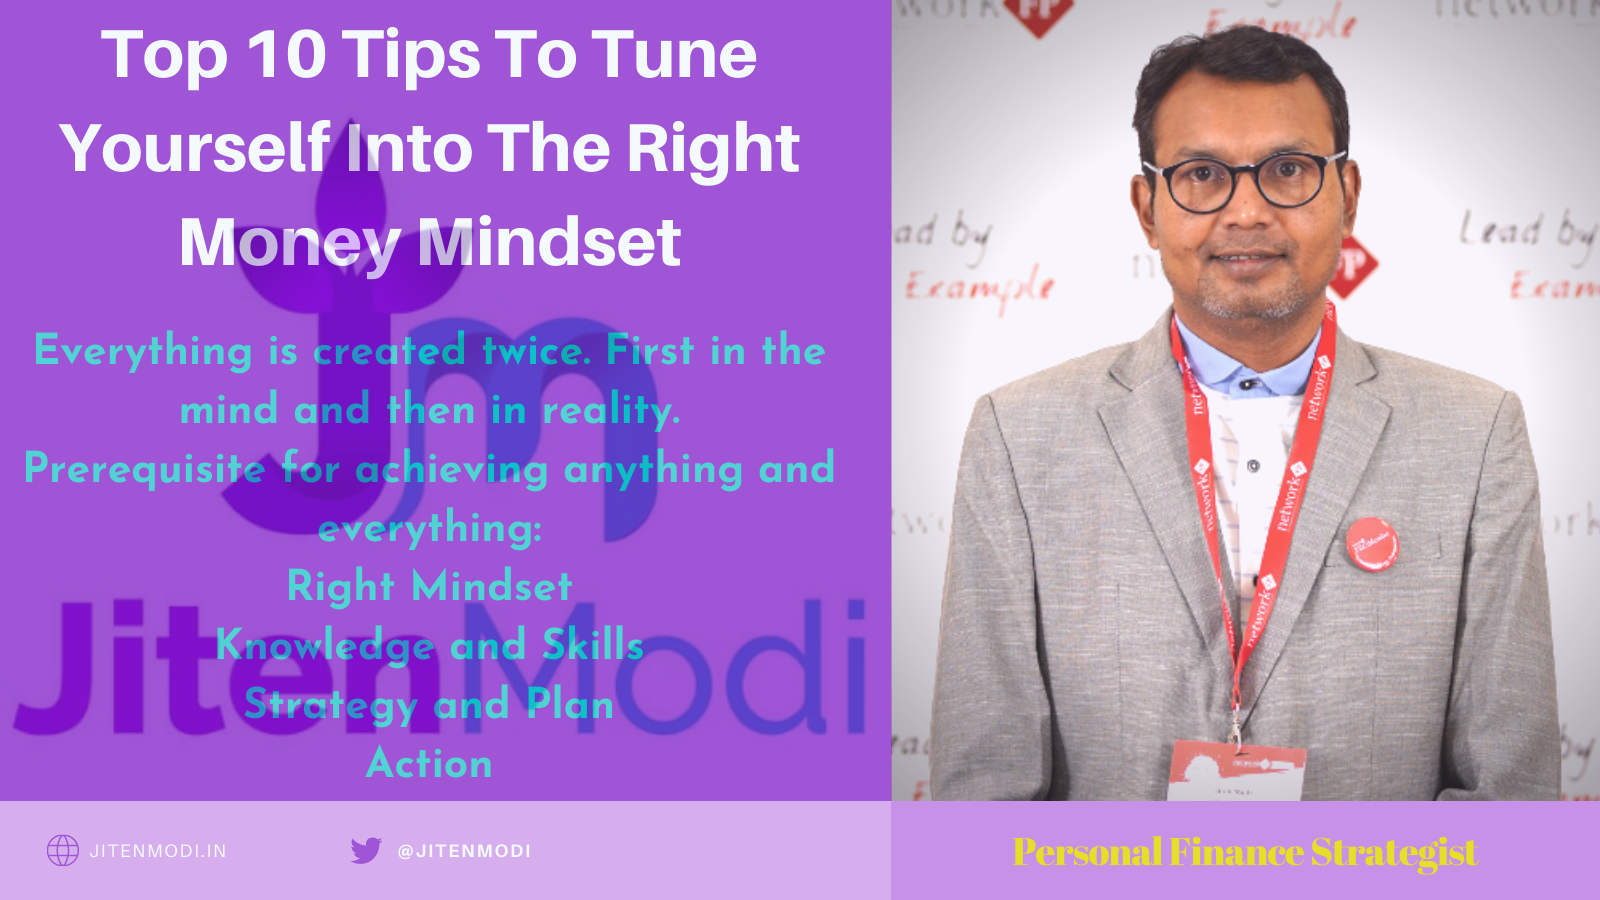 Top 10 Tips To Tune Yourself Into The Right Money Mindset